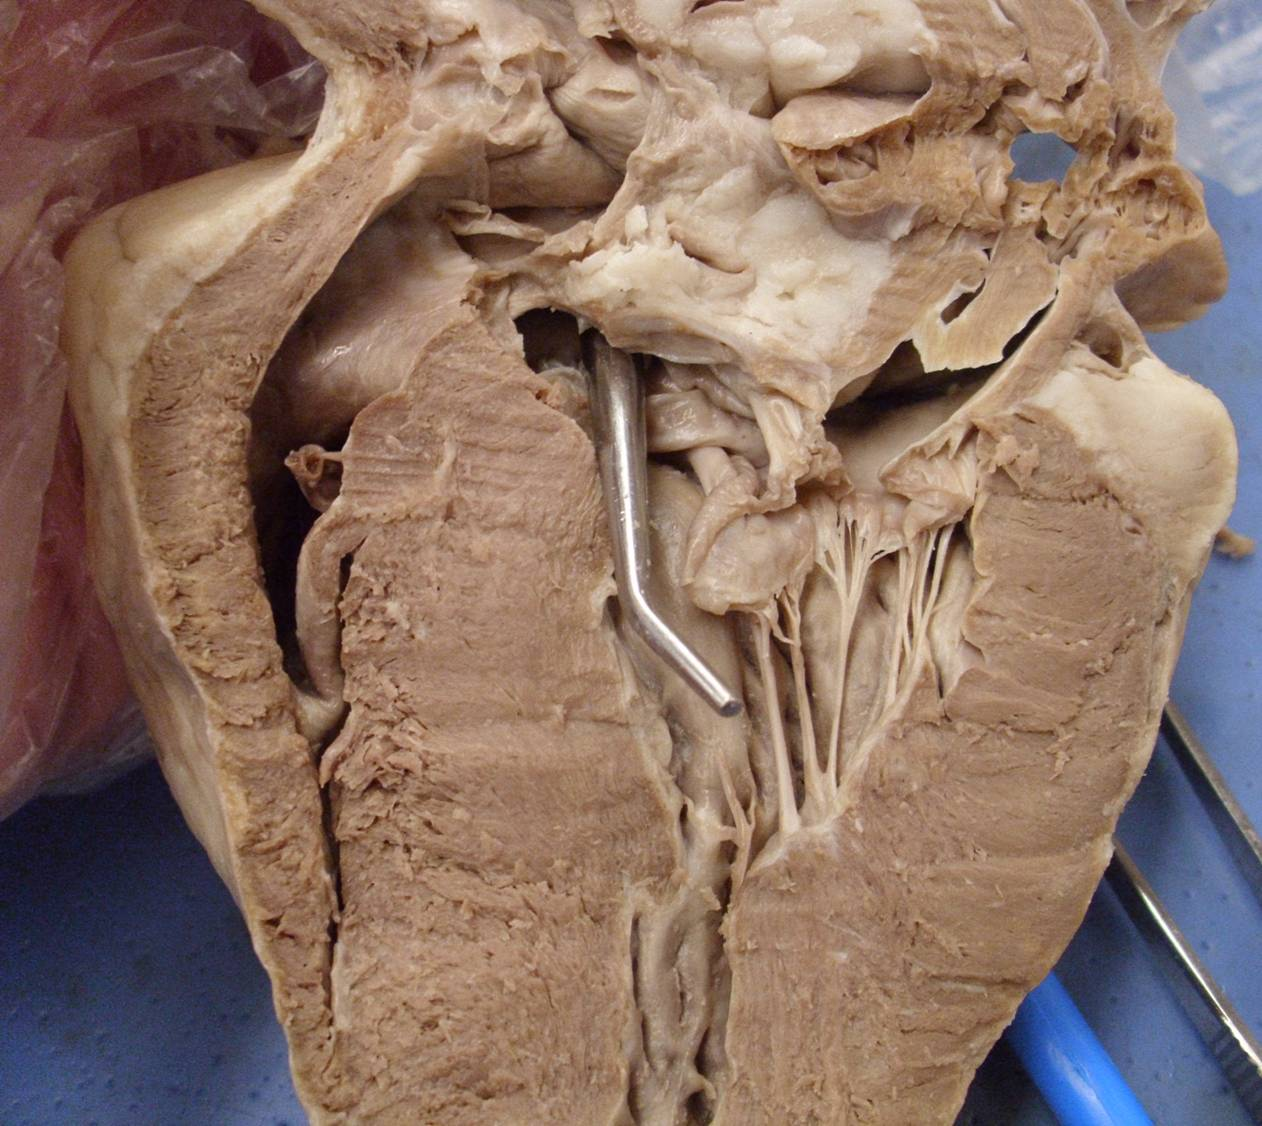 Heart model sheep heart practice quiz proprofs quiz ccuart Choice Image